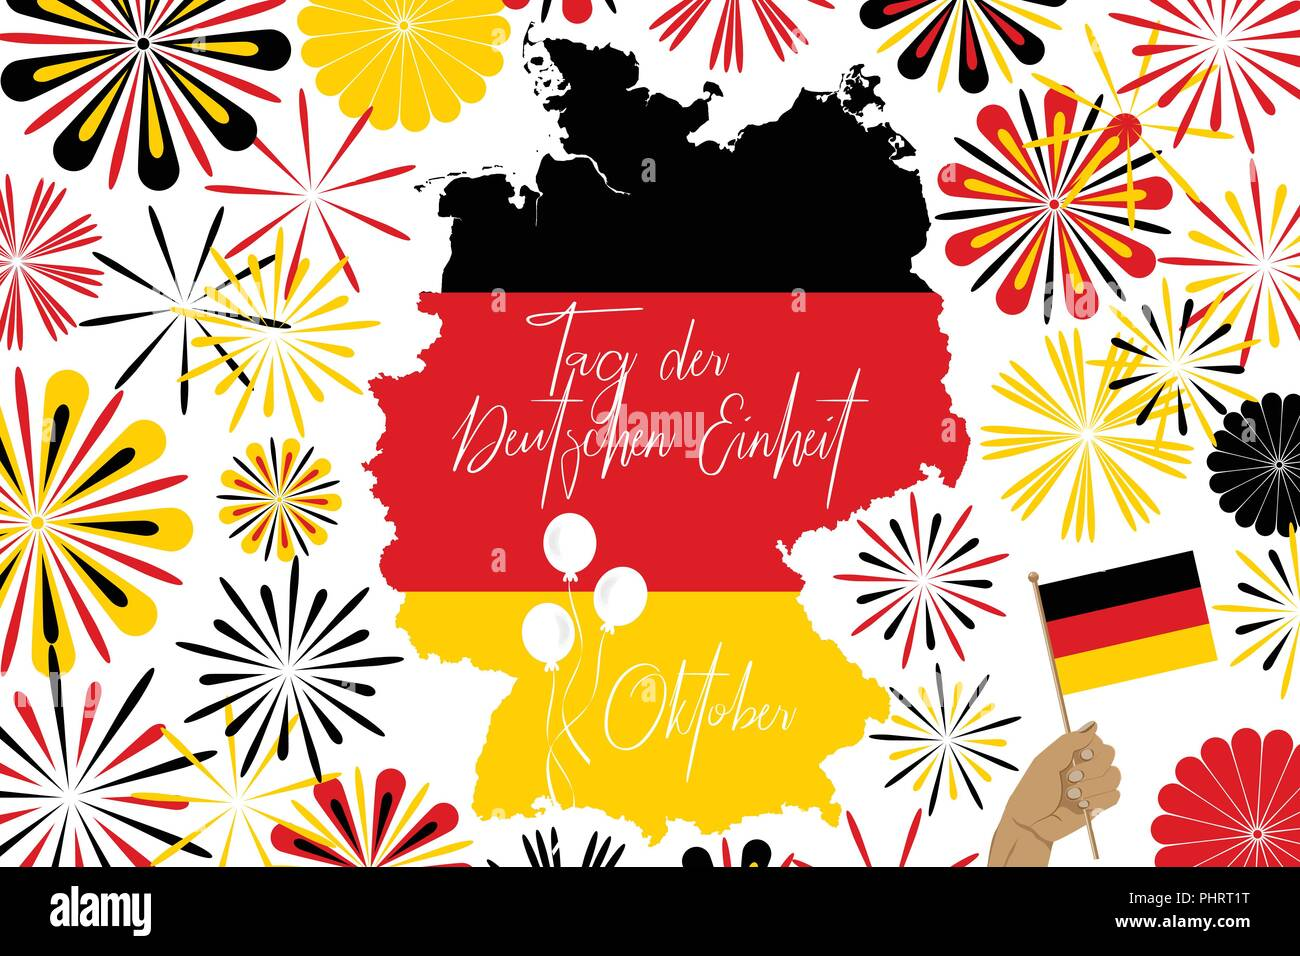 concept image of Germany map and abstarct fireworks and